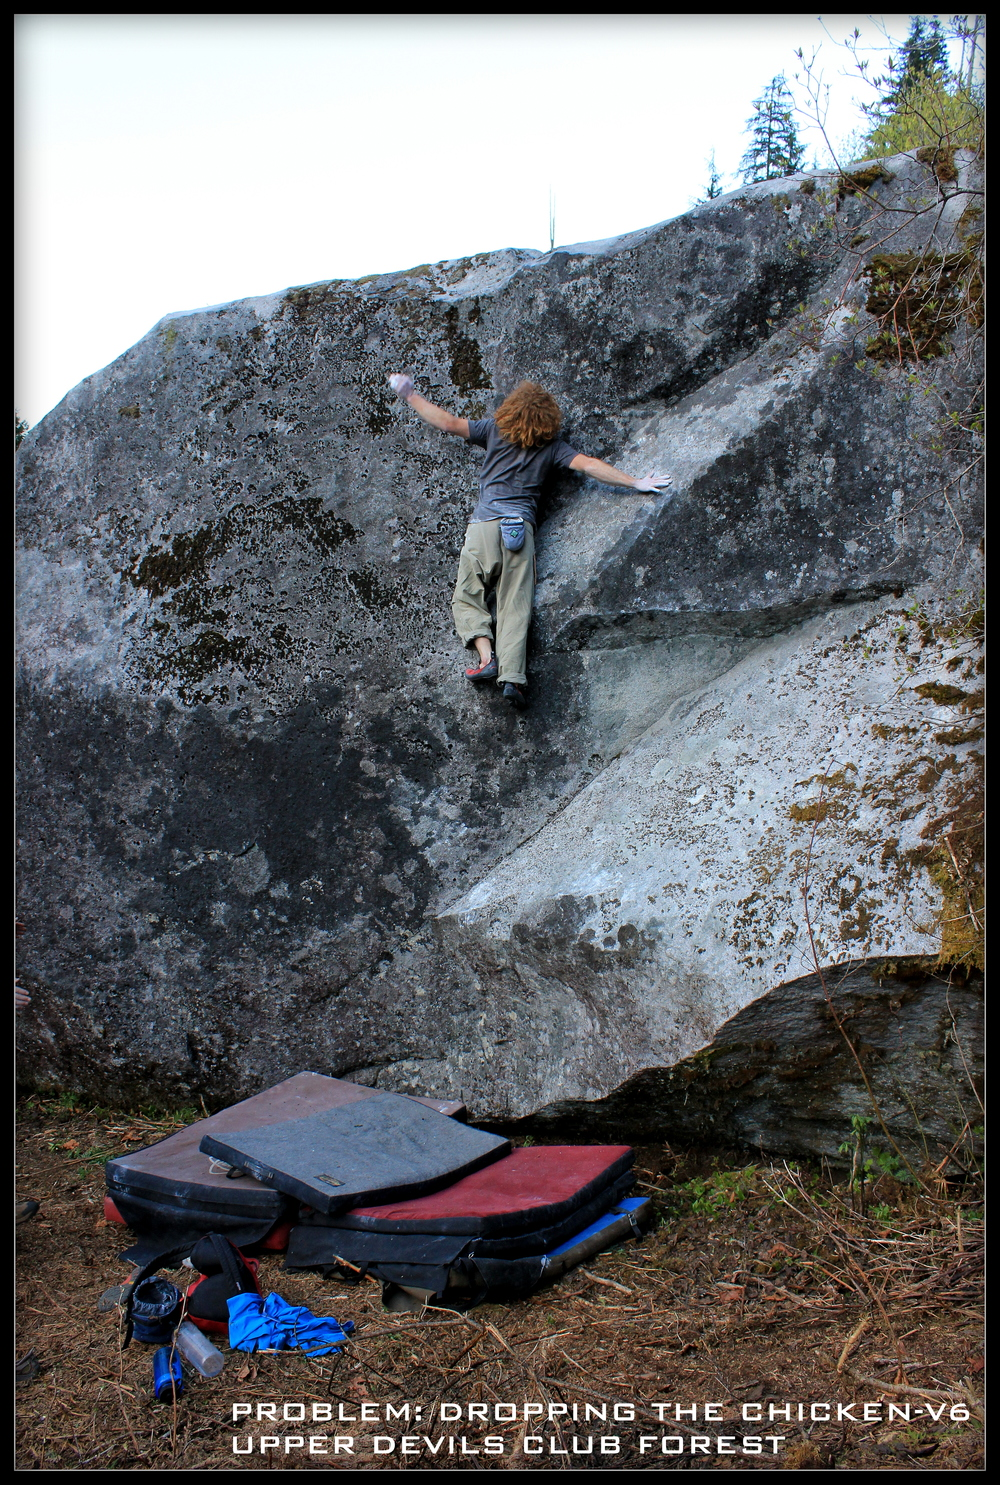 Johnny on Dropping the Chicken - V6 (FA Mike May) a three star problem in the Morpheus Bouldering Area.